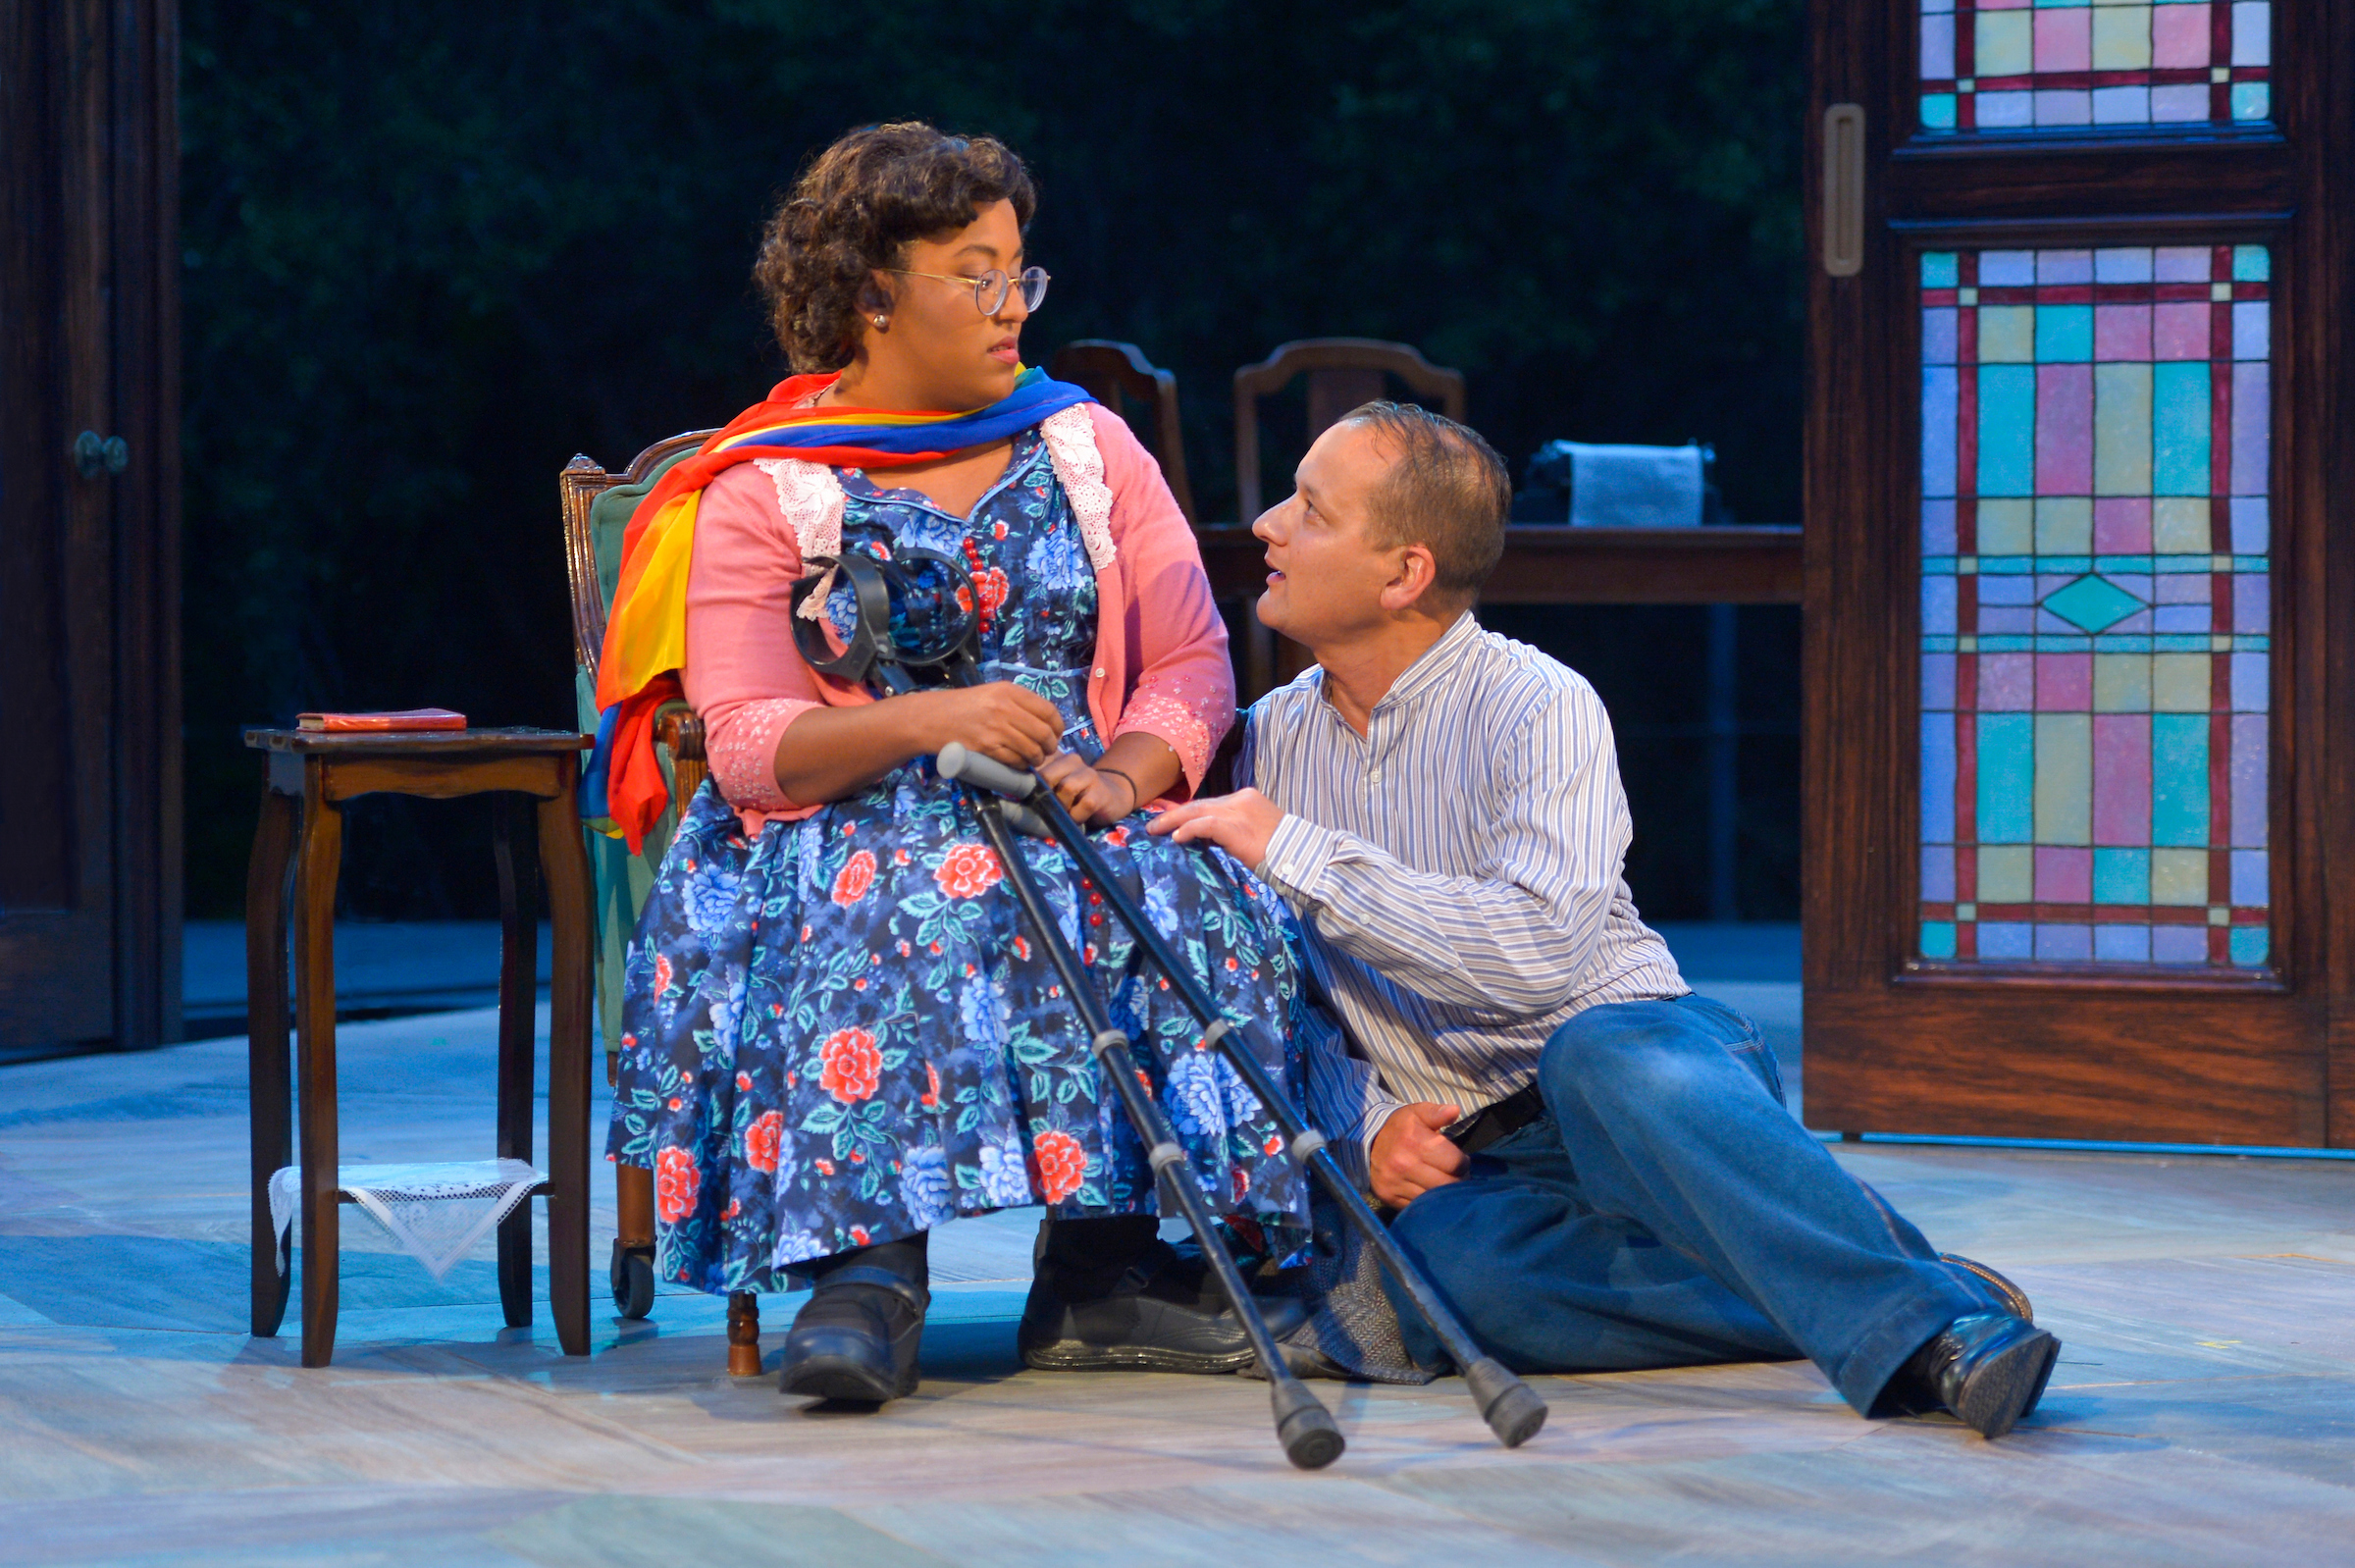 Phoebe Fico as Laura and Sean San José as Tom. Photo: Kevin Berne.